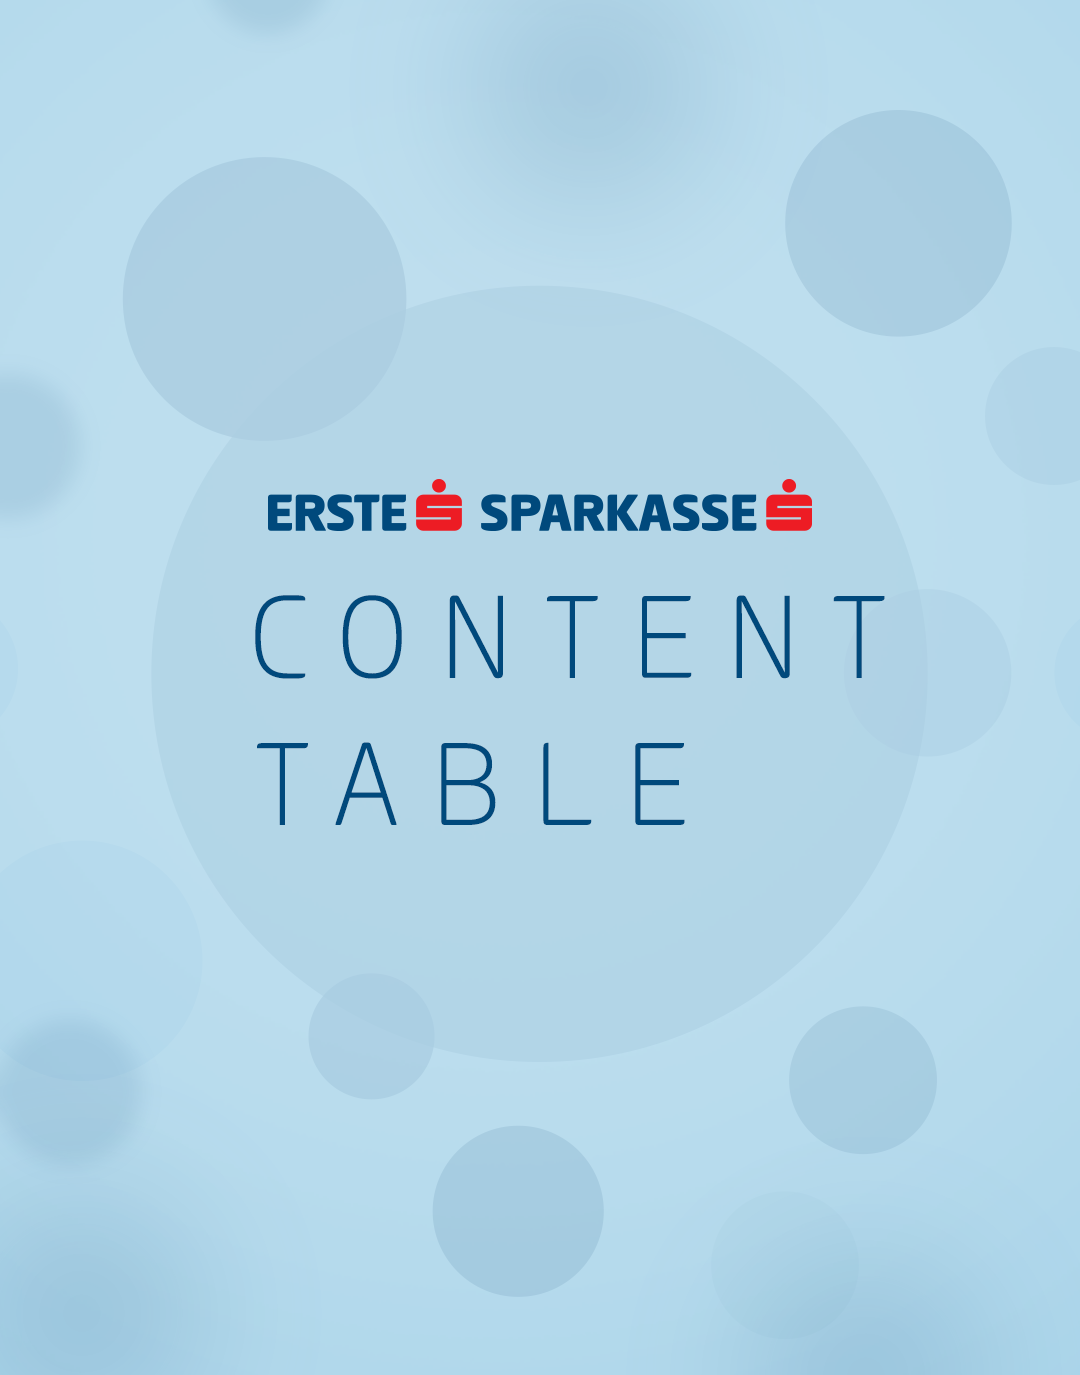 erstebank_sparkasse_content_table